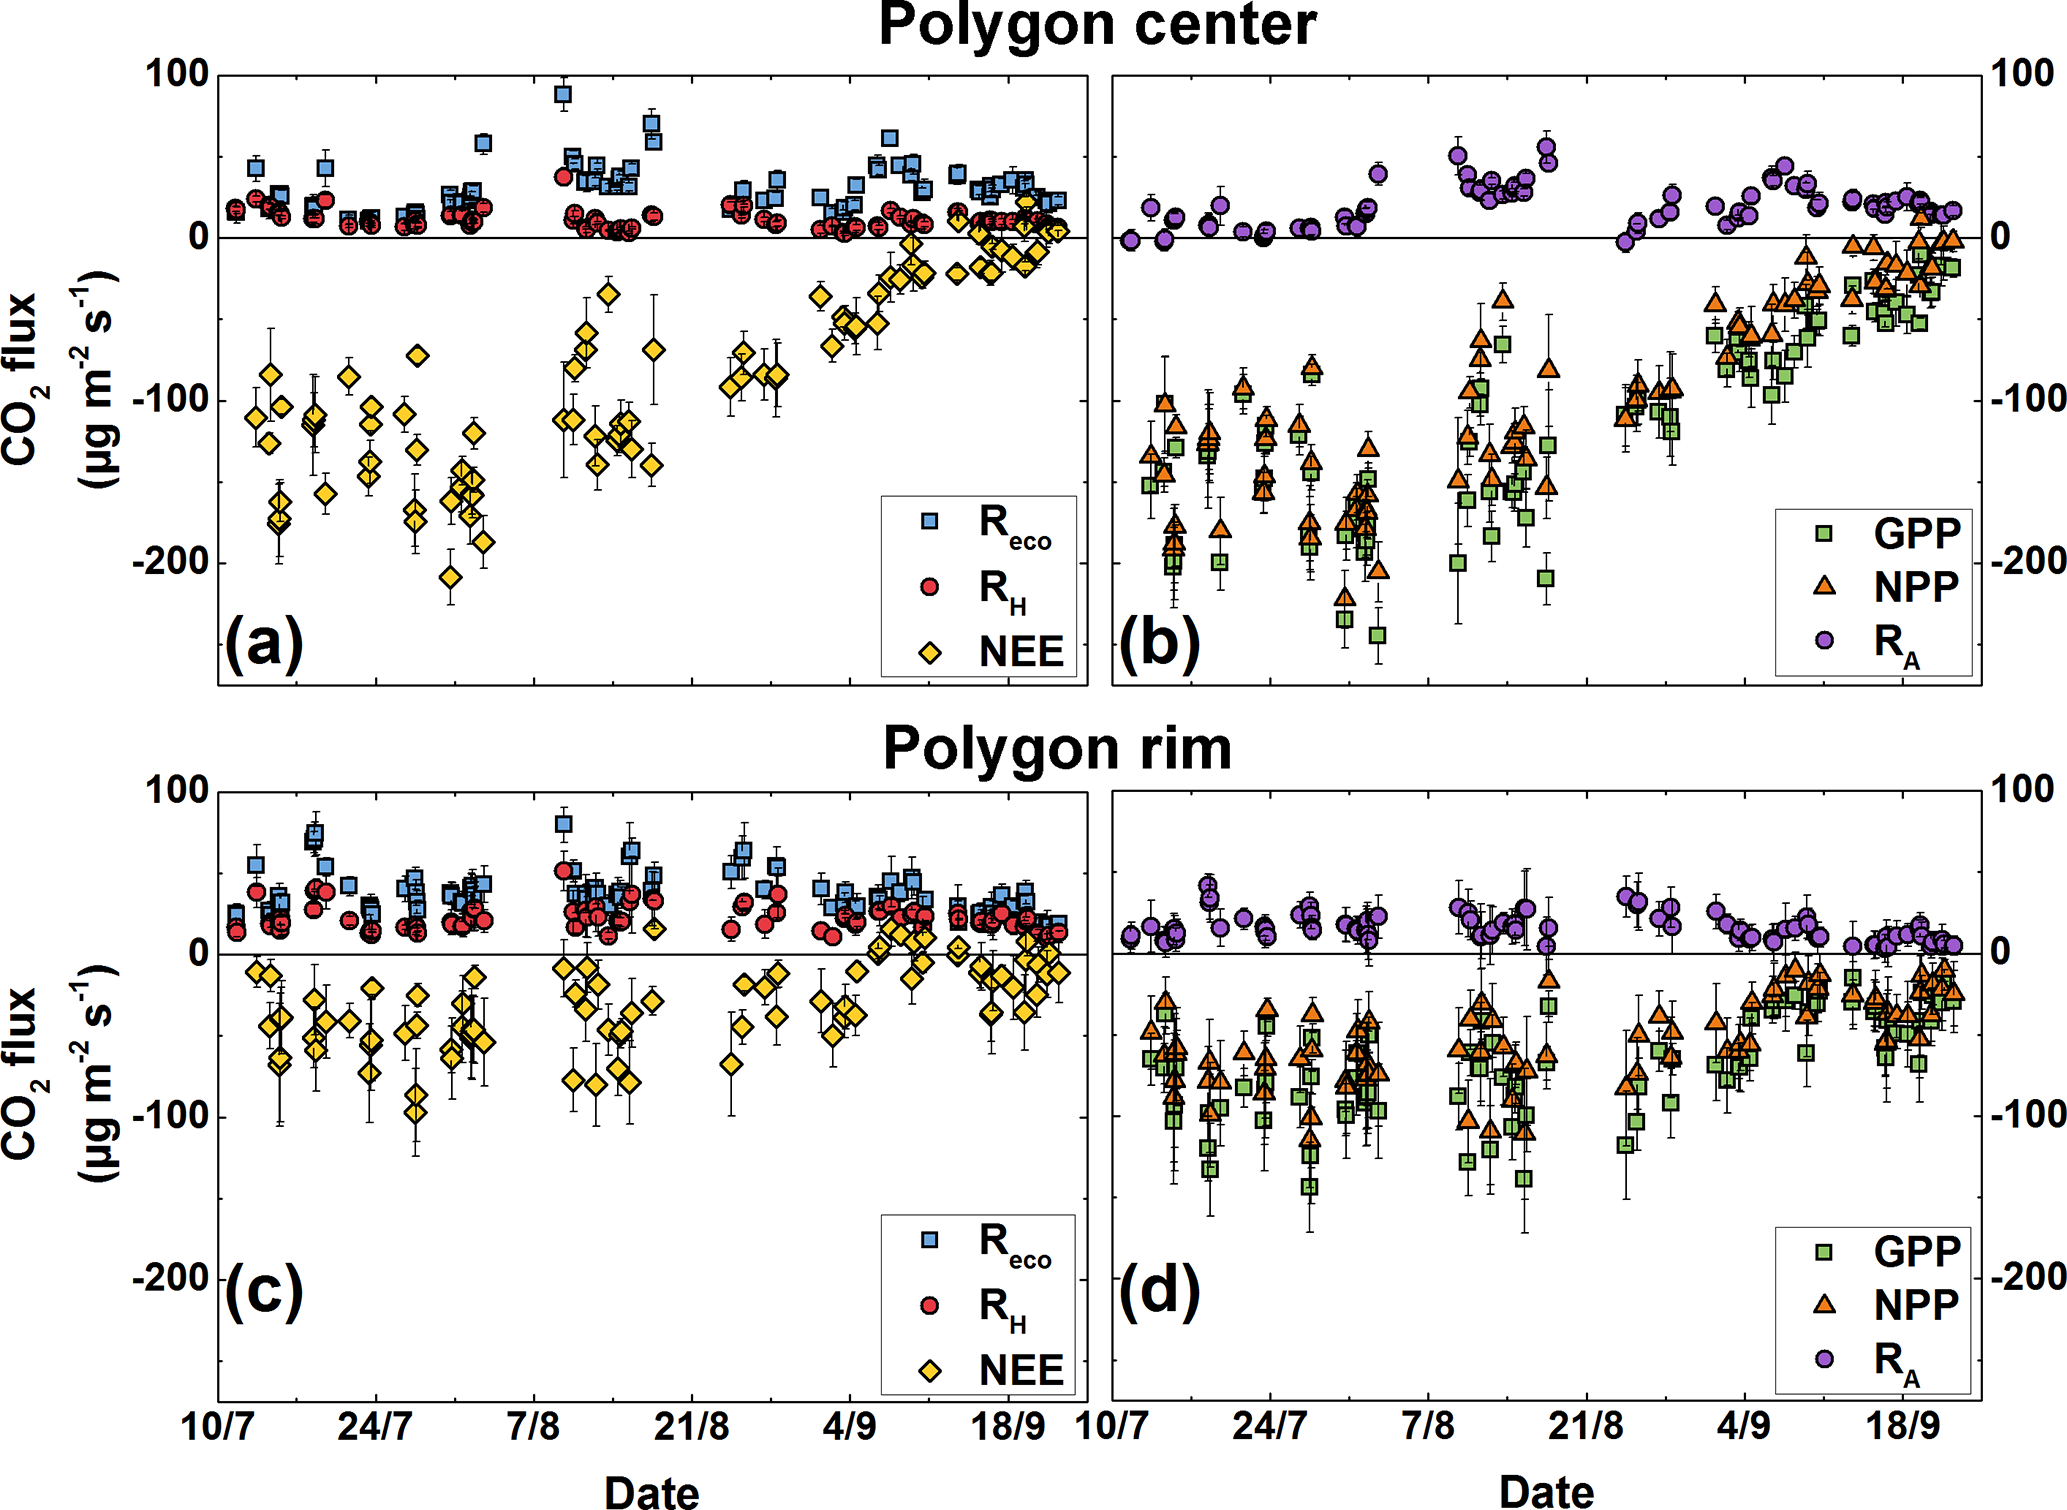 BG - Partitioning net ecosystem exchange of CO2 on the pedon